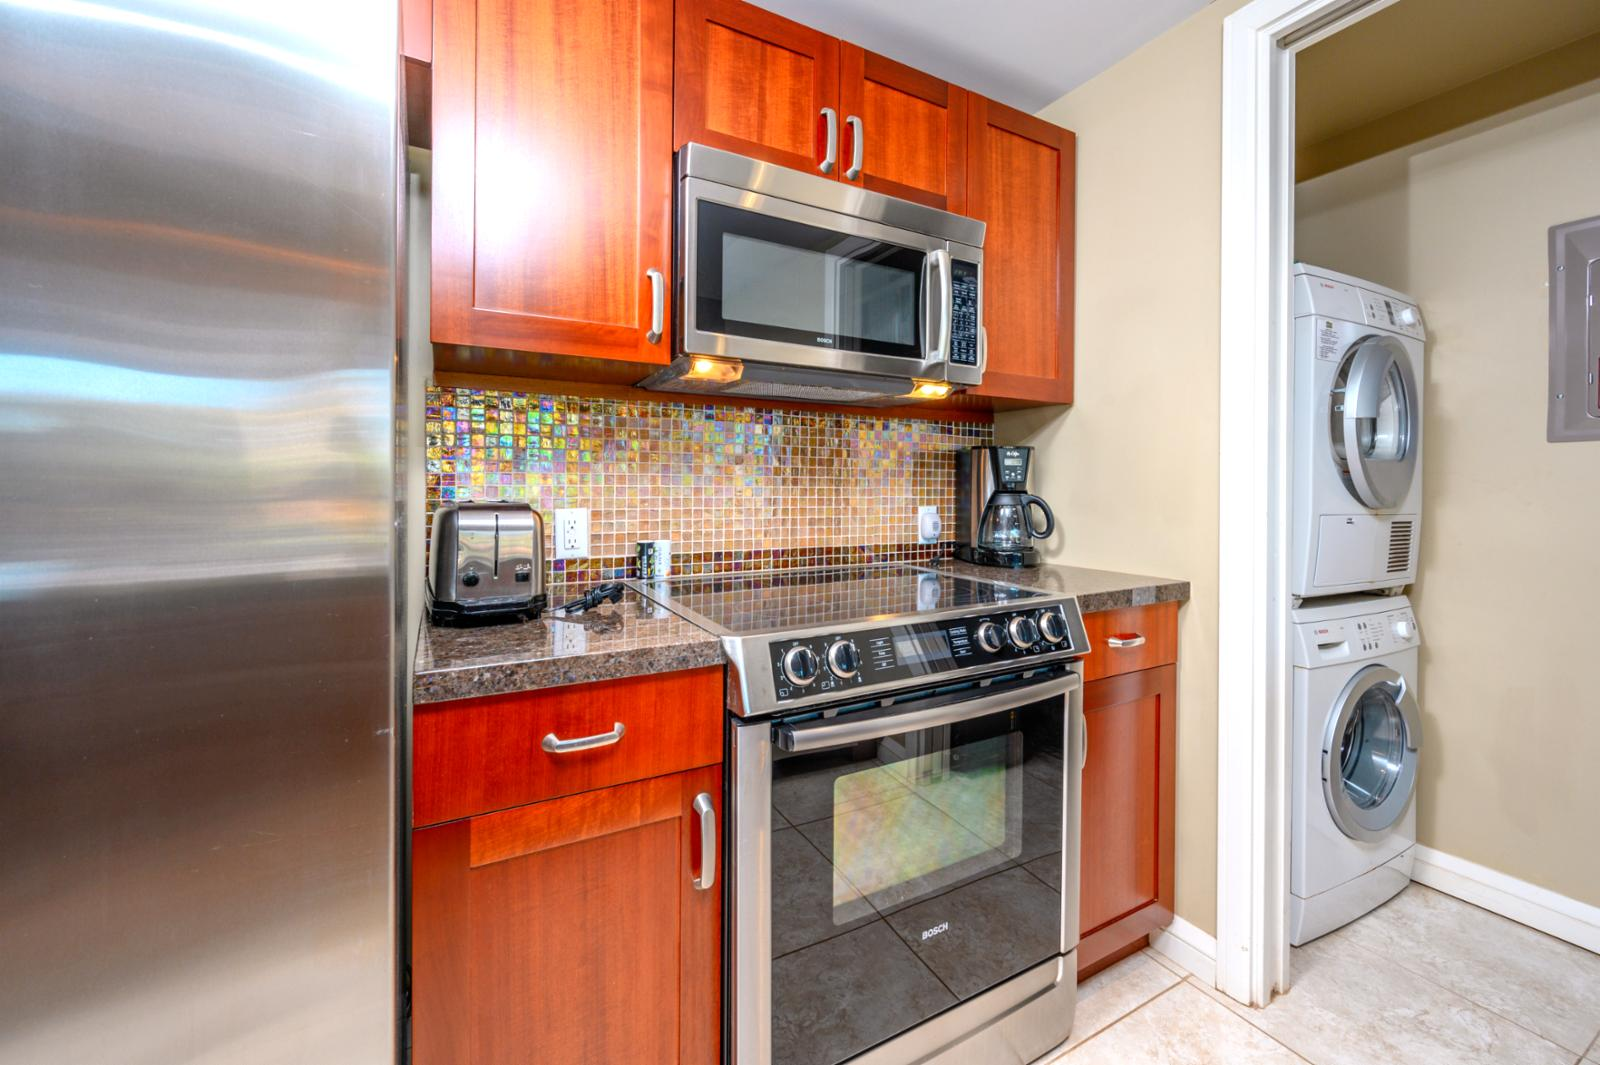 Off the kitchen is a small laundry room with a washer and dryer for your use.